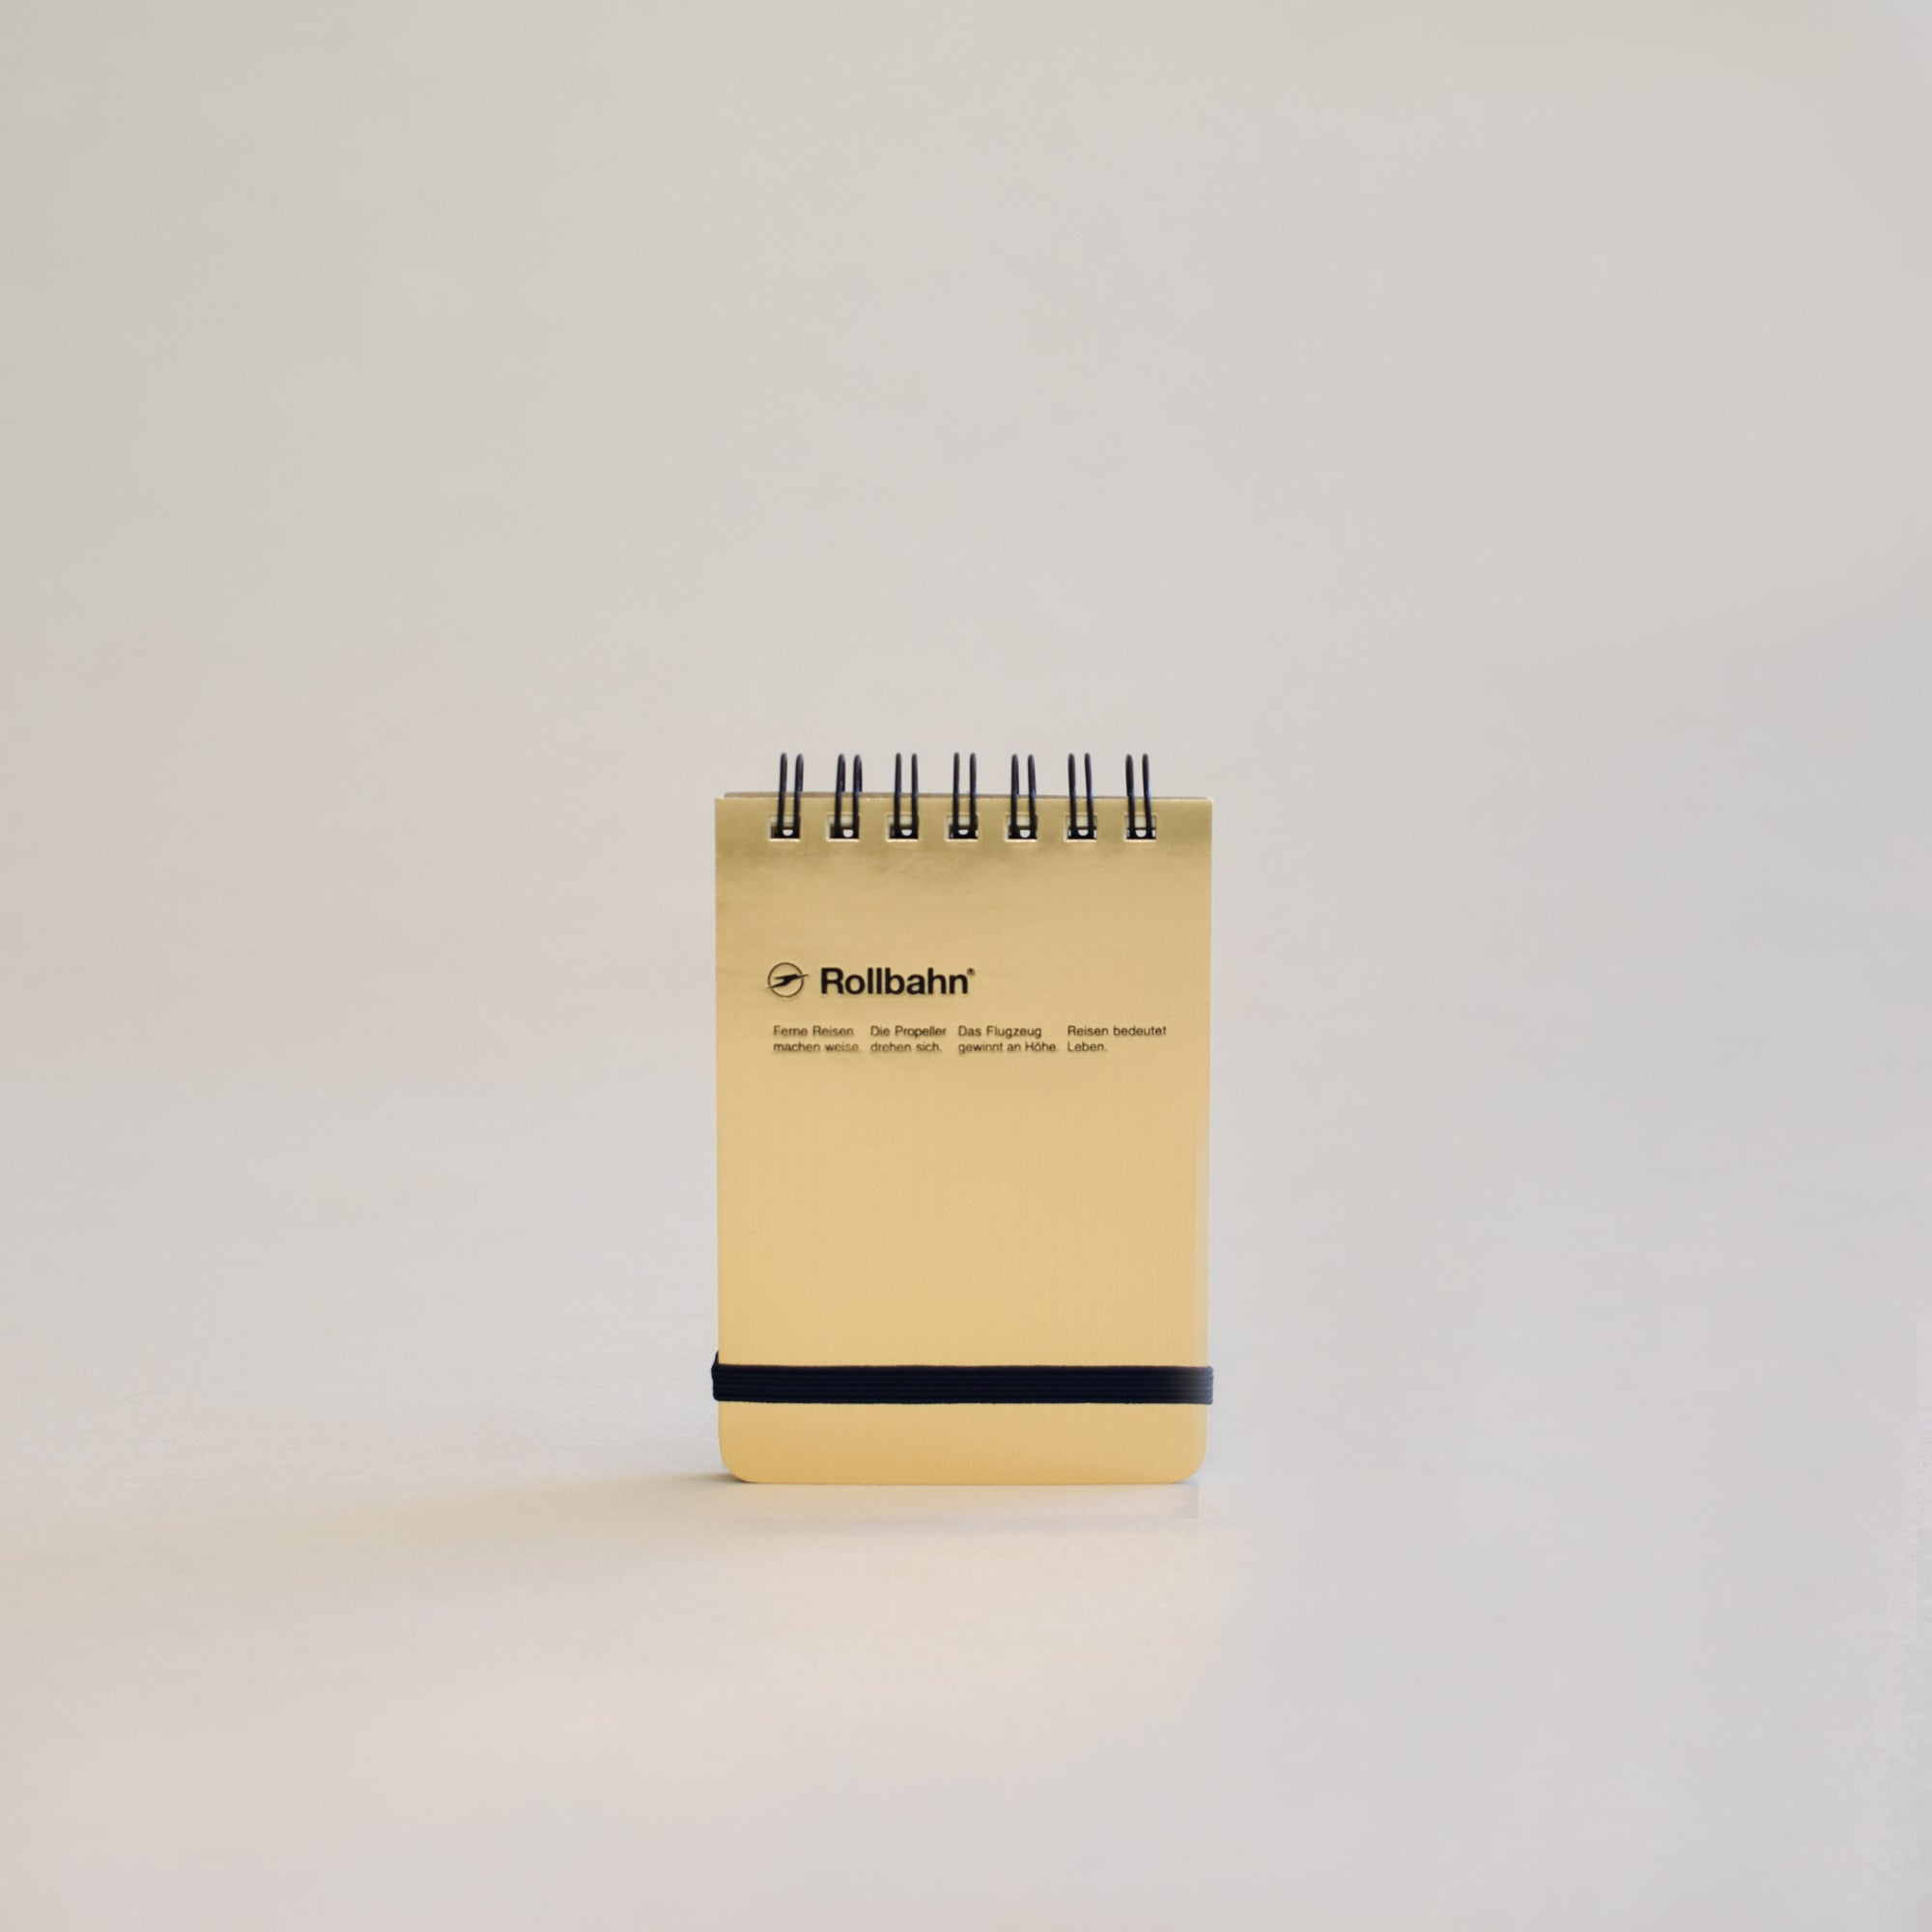 The Rollbahn Spiral Notebook Mini Flip Memo in shiny gold.